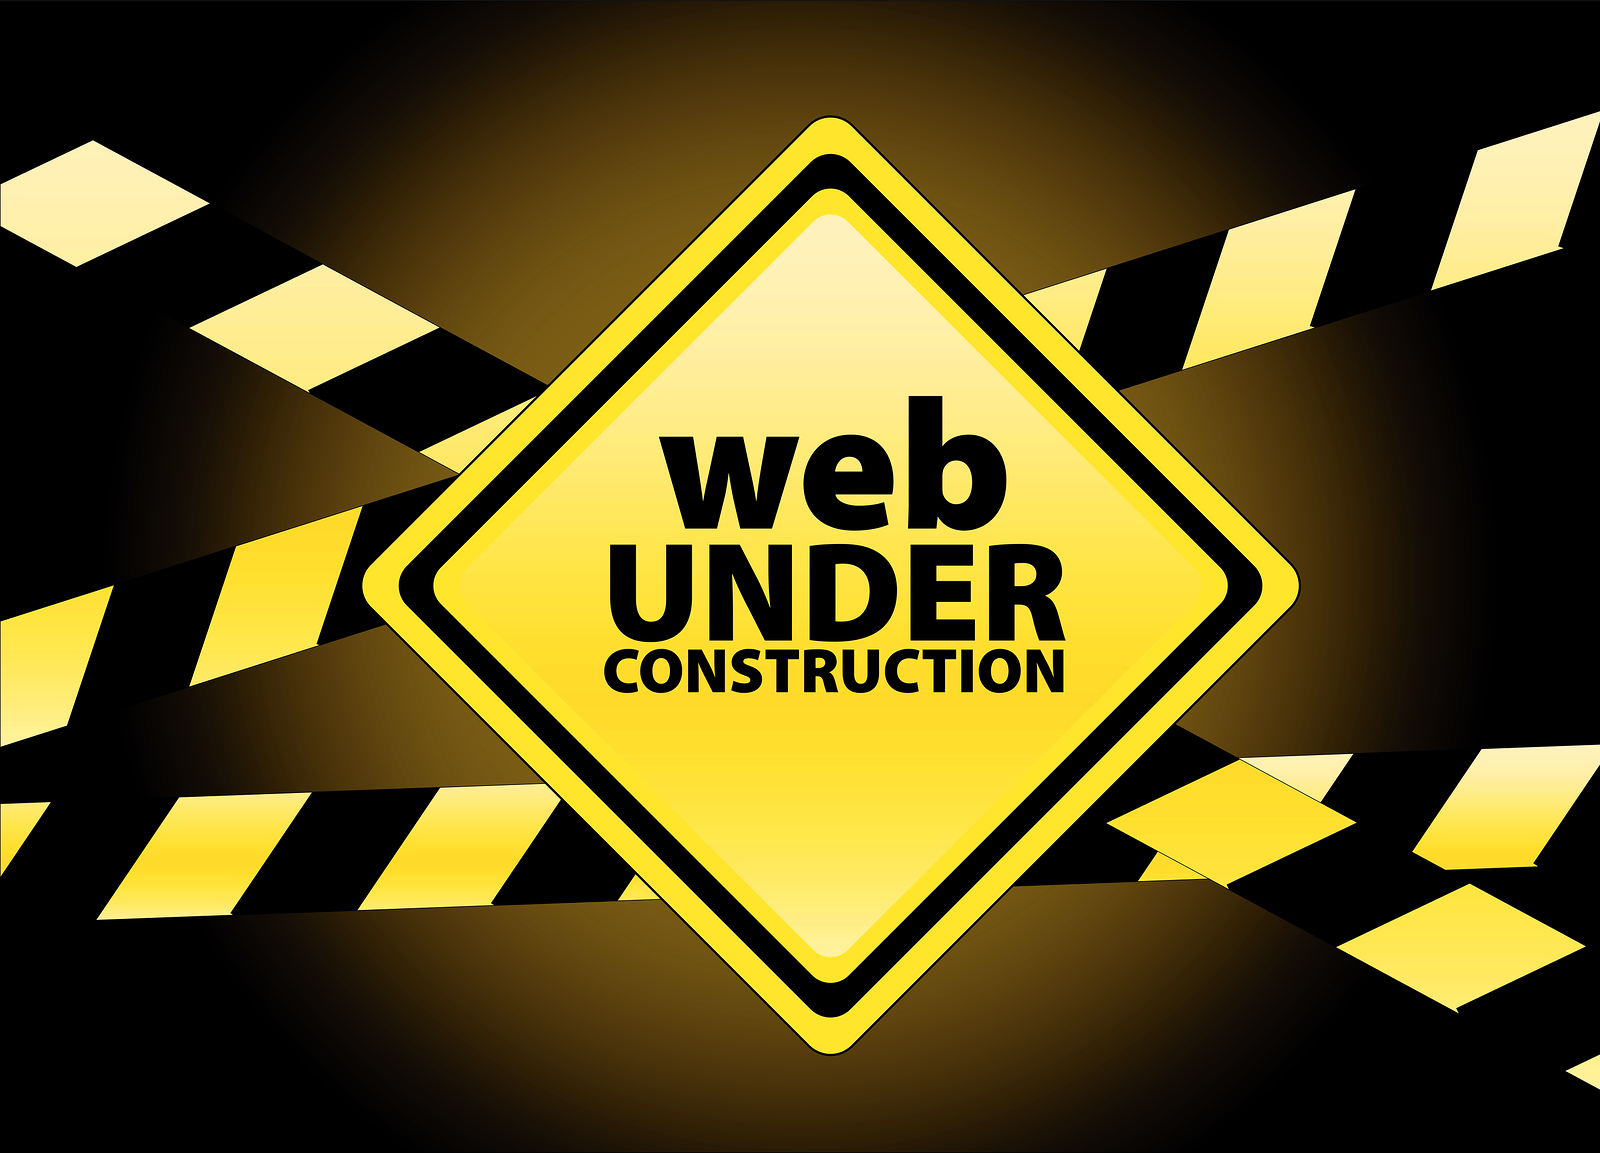 http://n-media.net/wp-content/uploads/2013/05/Web-under-construction.jpeg